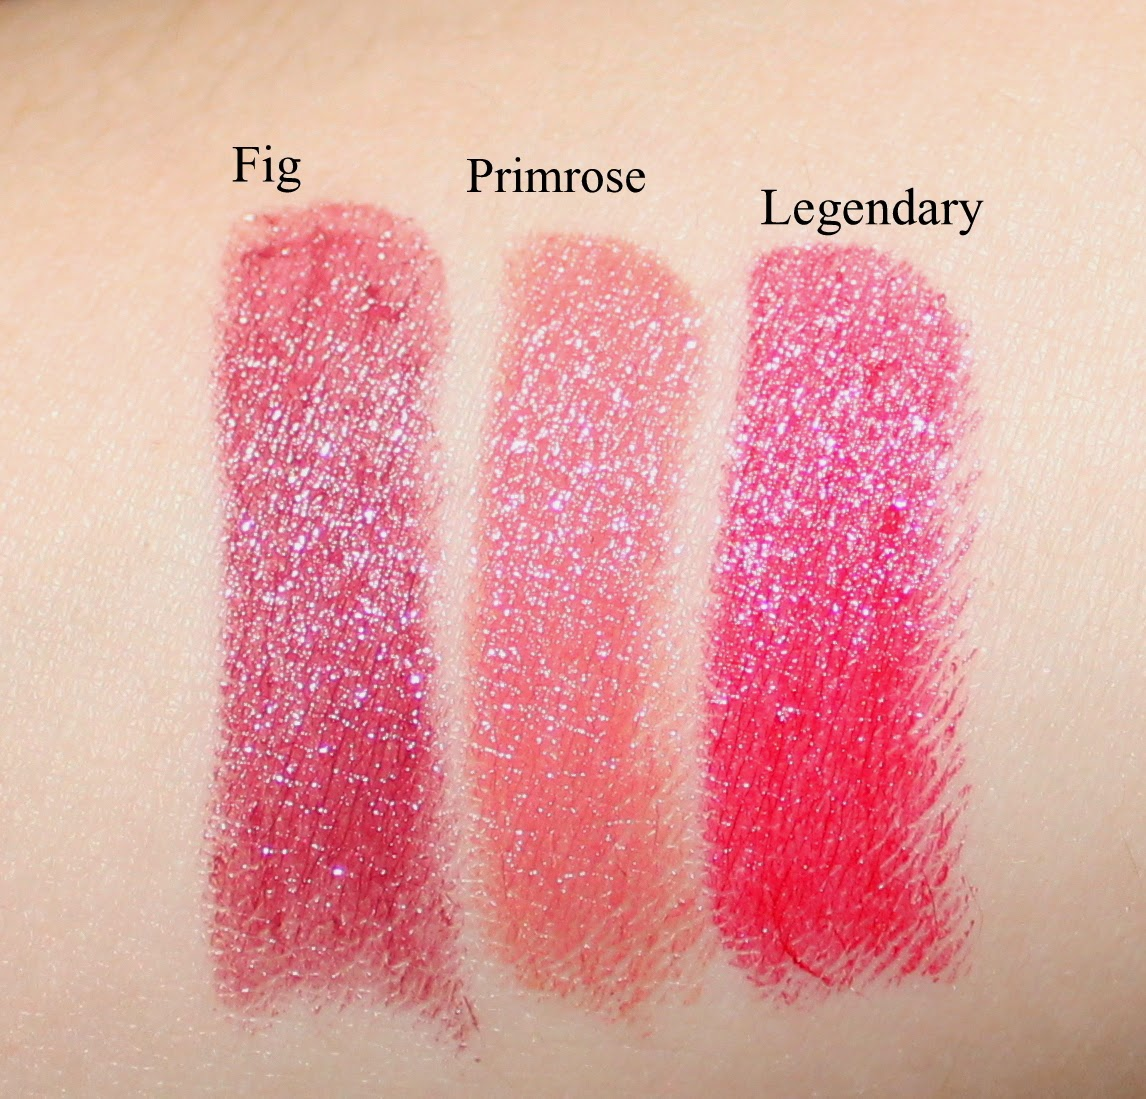 Smashbox On the Rocks Legendary Lipstick Trio Swatches